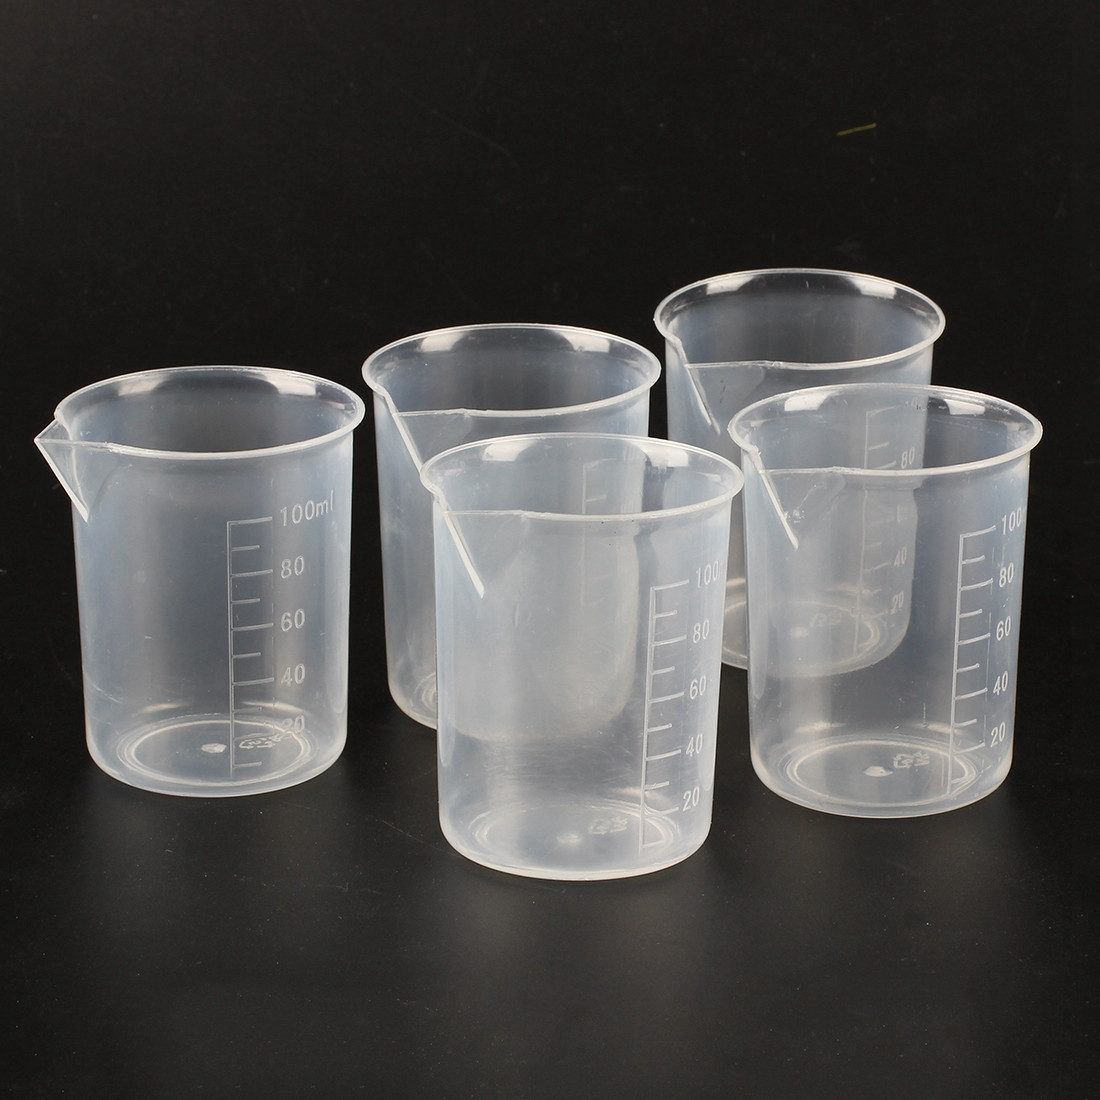 5 Pieces Of 100 Ml Transparent Measuring Cup Laboratory Plastic Measuring Cups